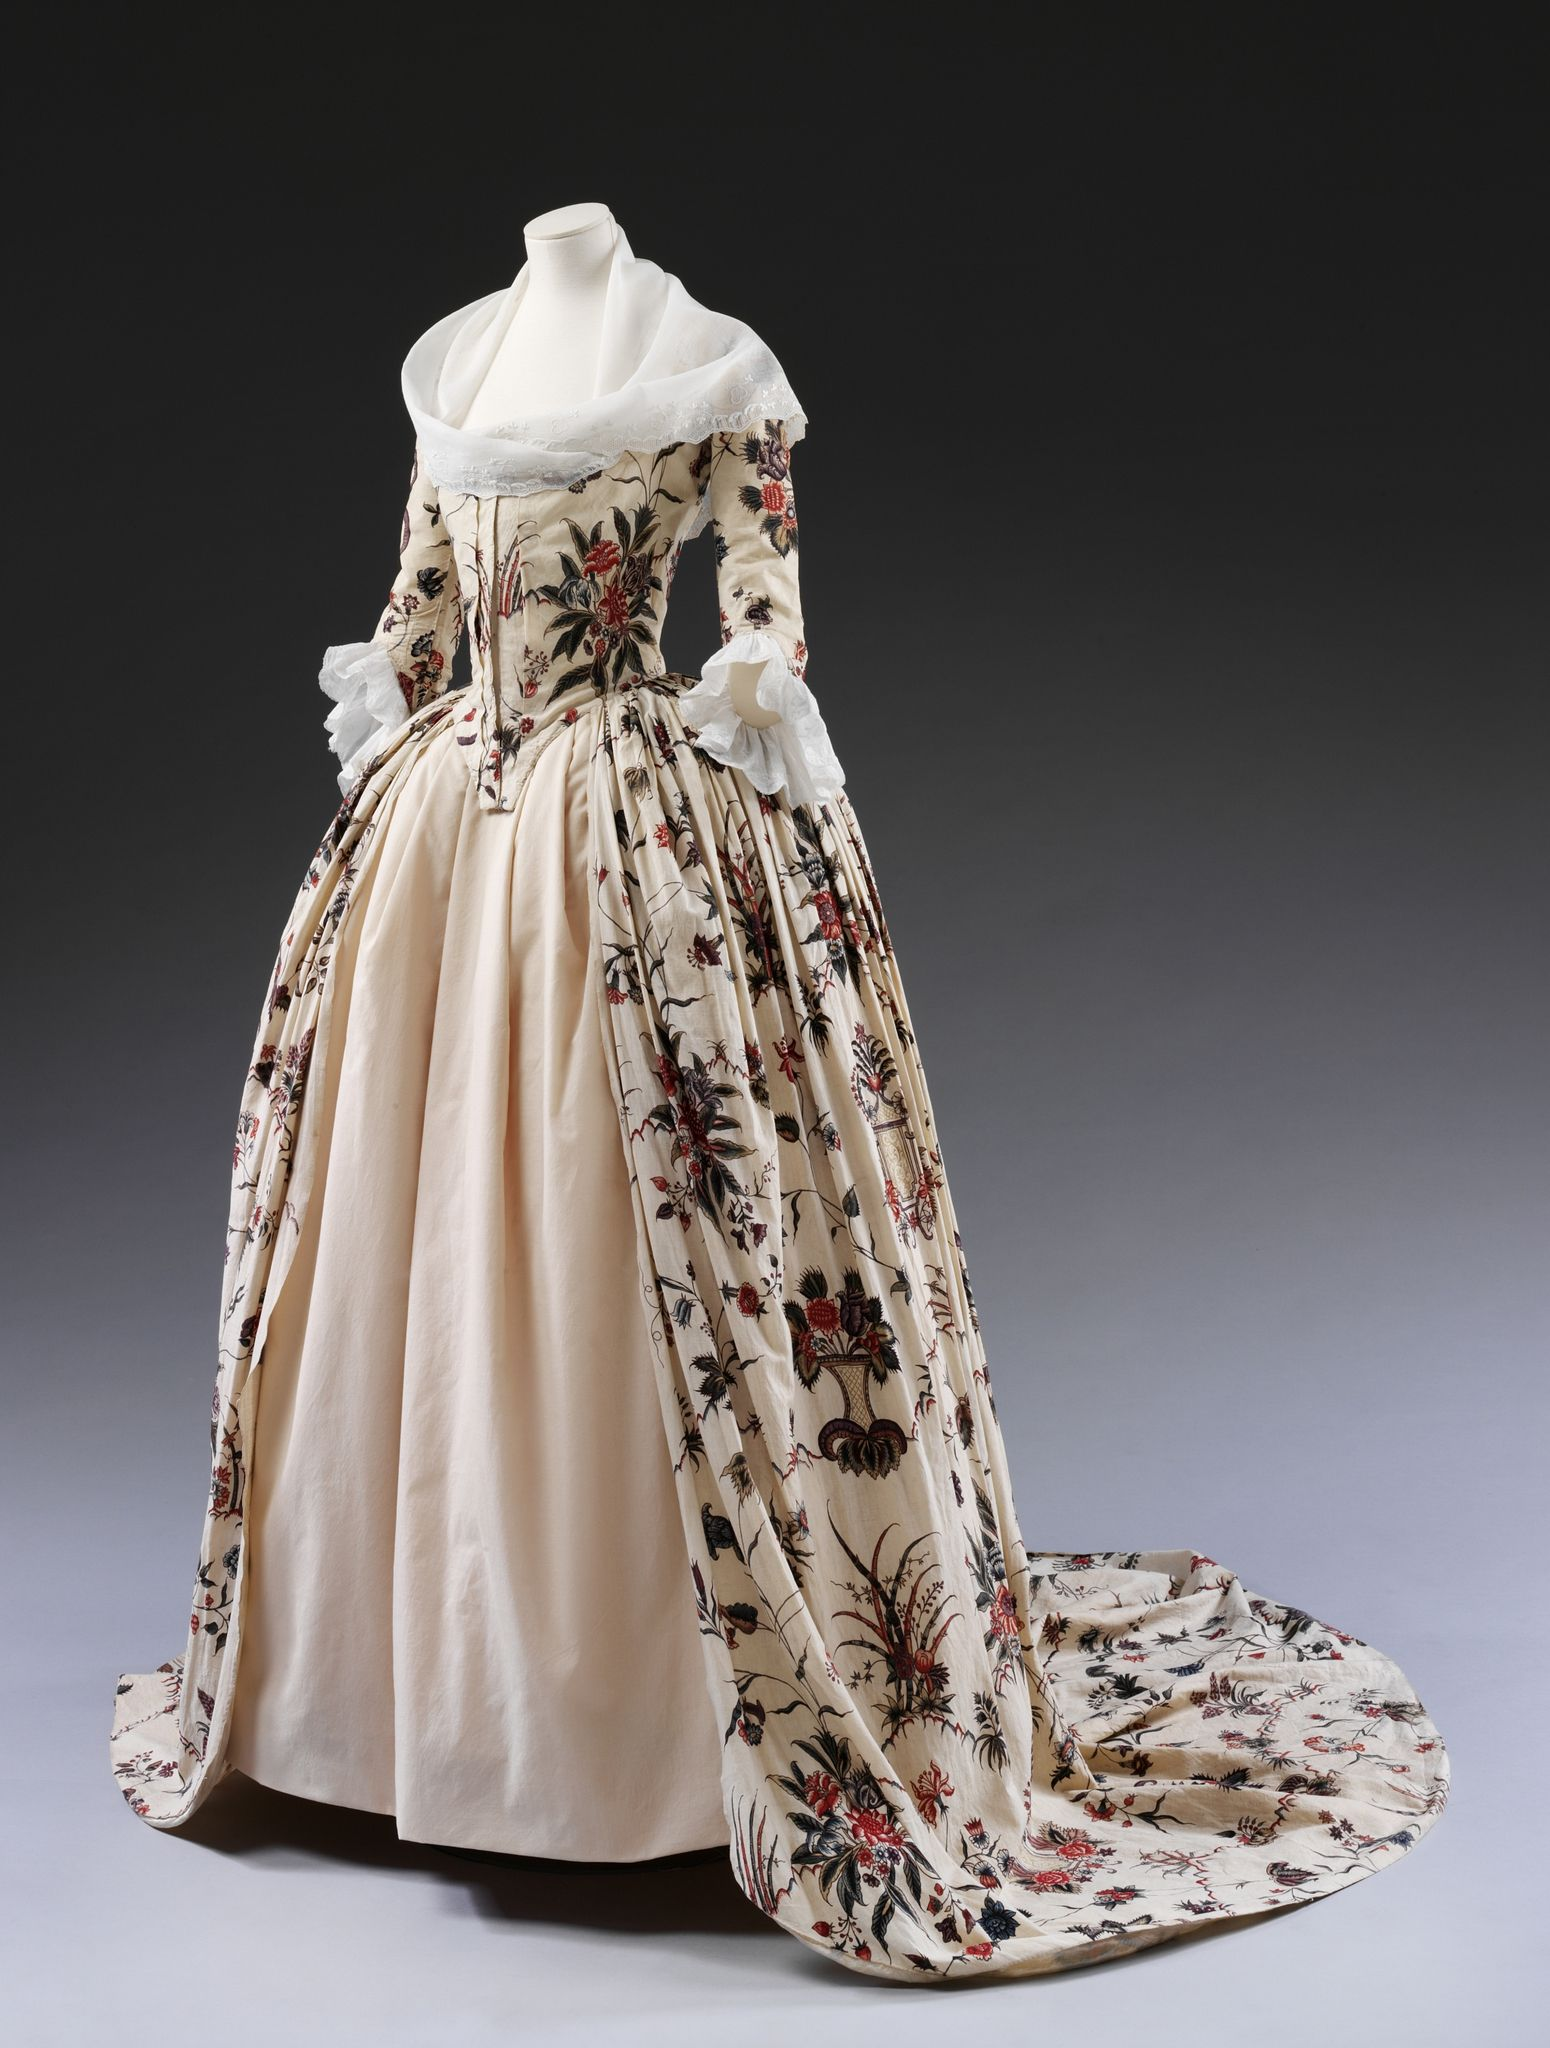 Victoria Albert Museum S Europe 1600 1815 Galleries Open To The Public Today Alain R Truong Historical Dresses 18th Century Fashion 18th Century Dress